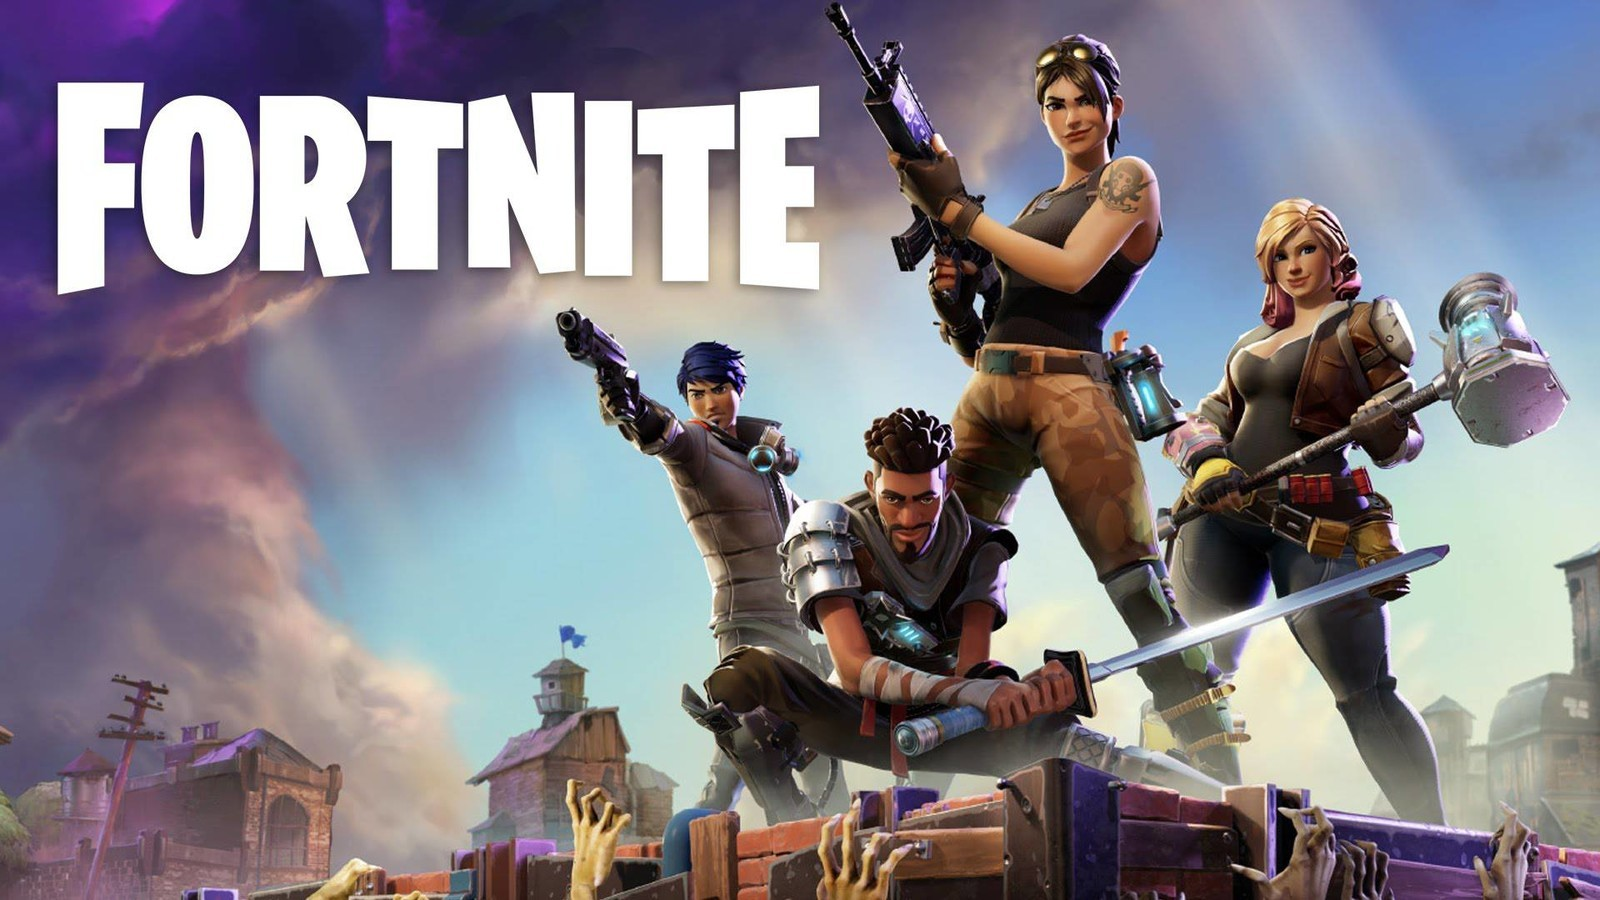 【FNITETOOL.COM FORTNITE】 Vbucks and Extra Vbucks FOR ANDROID IOS PC PLAYSTATION | 100% WORKING METHOD | GET UNLIMITED RESOURCES NOW